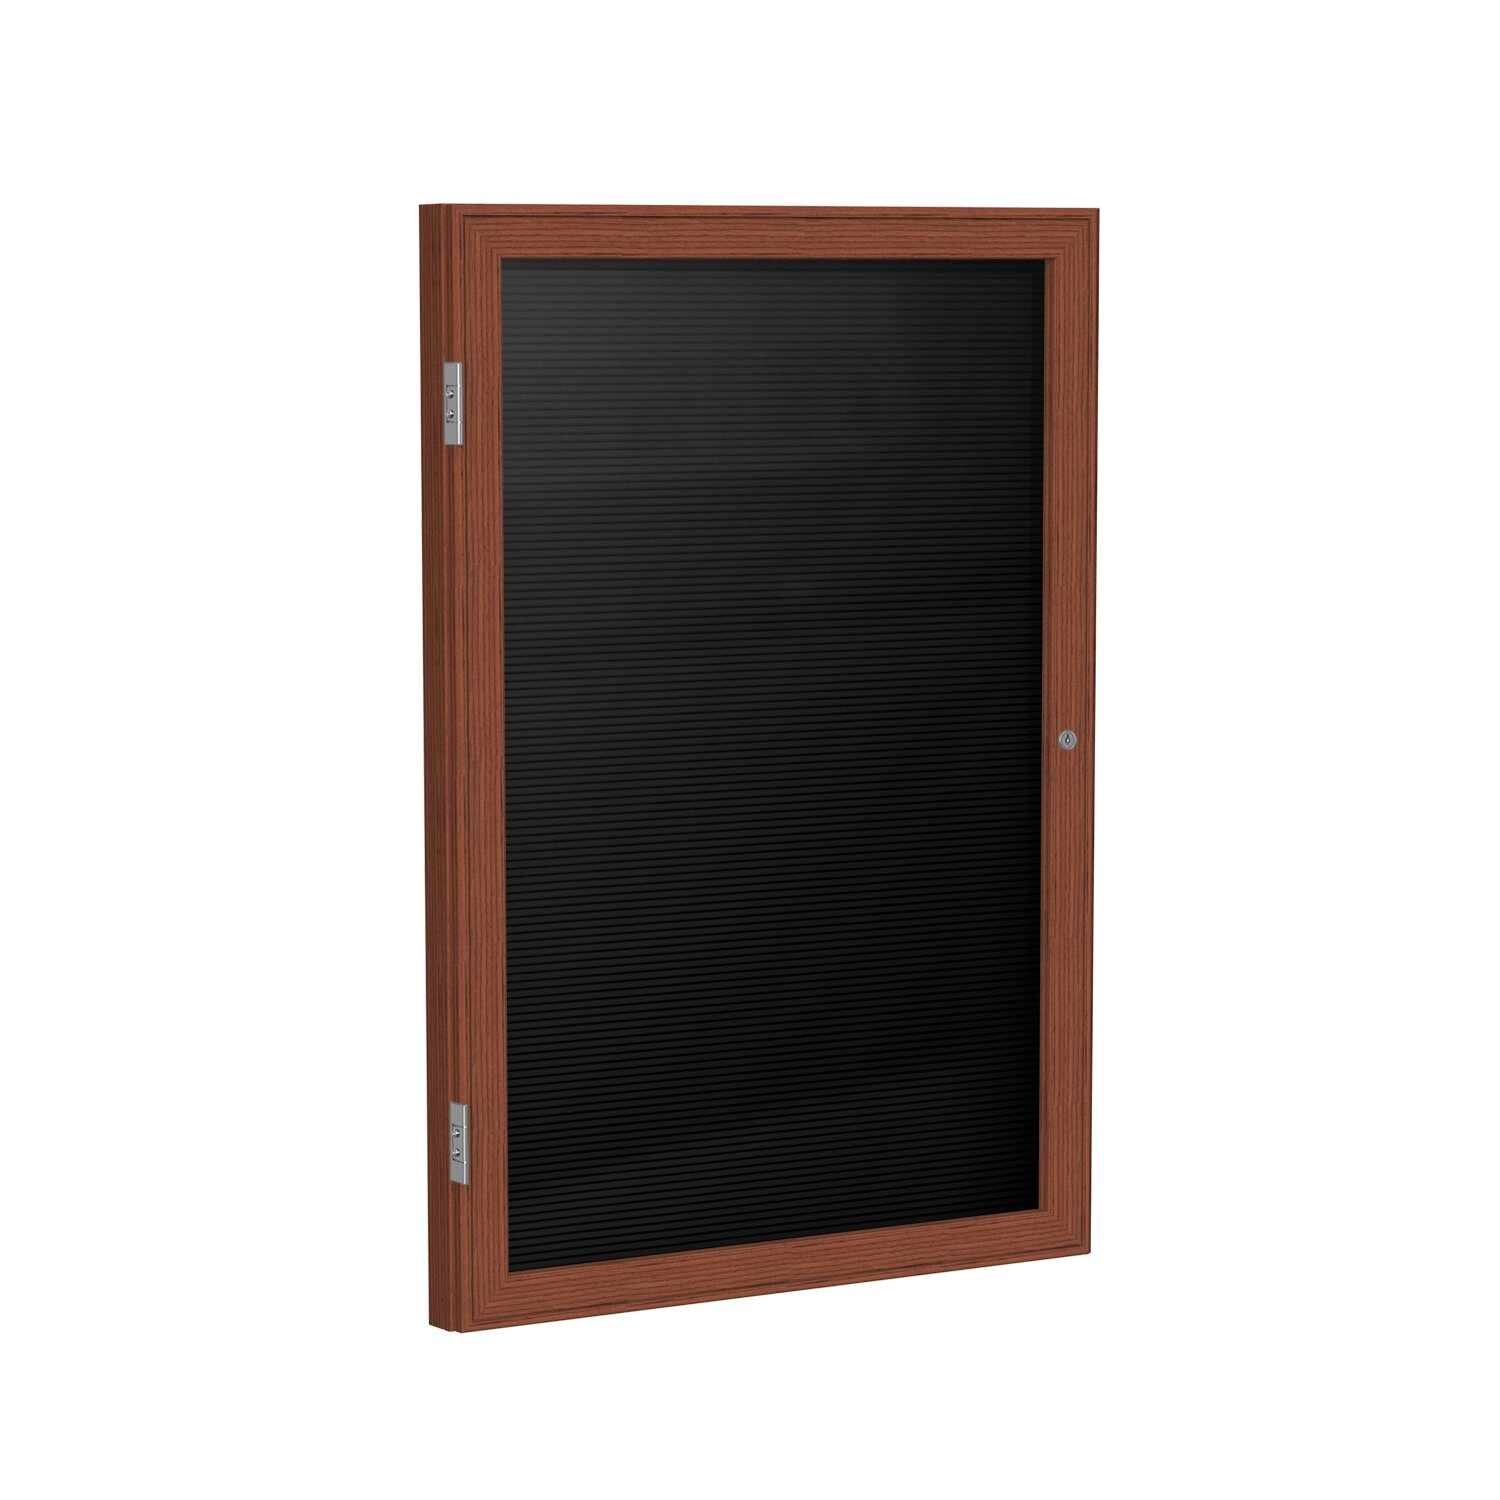 Superb img of Door Wood Frame Enclosed Letter Board by Ghent with #784230 color and 1500x1500 pixels